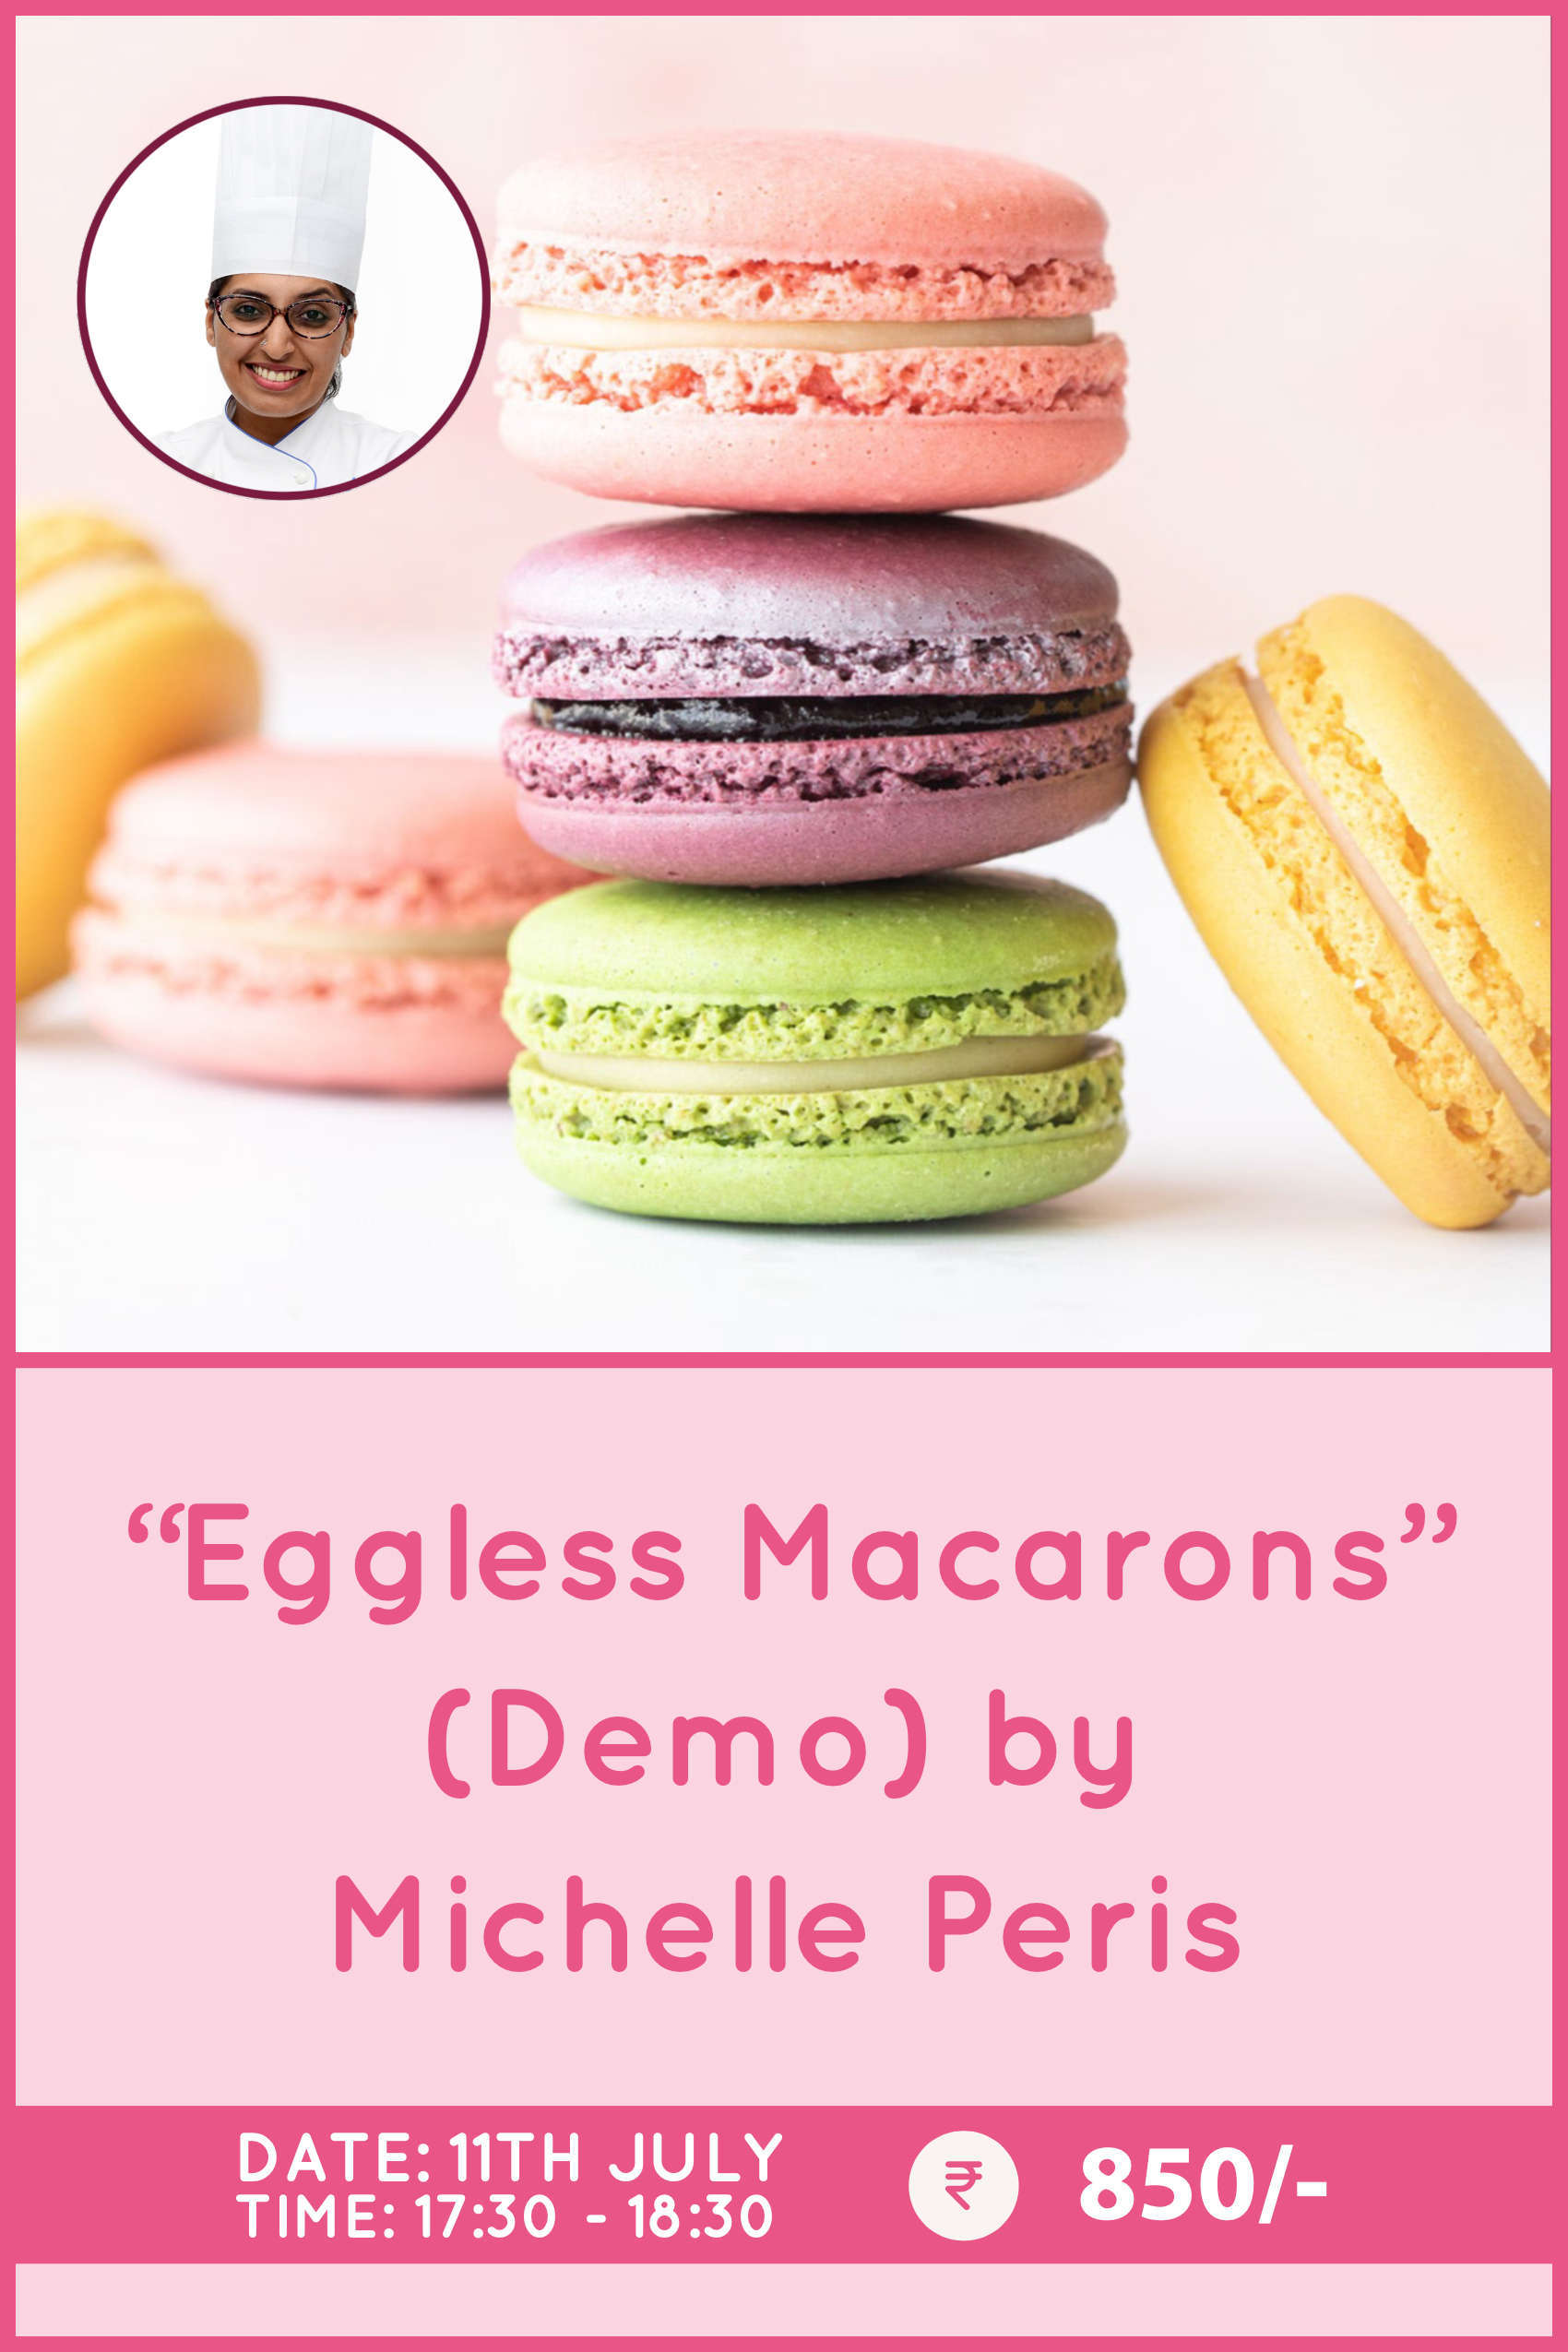 Eggless Macarons by Michelle Peris